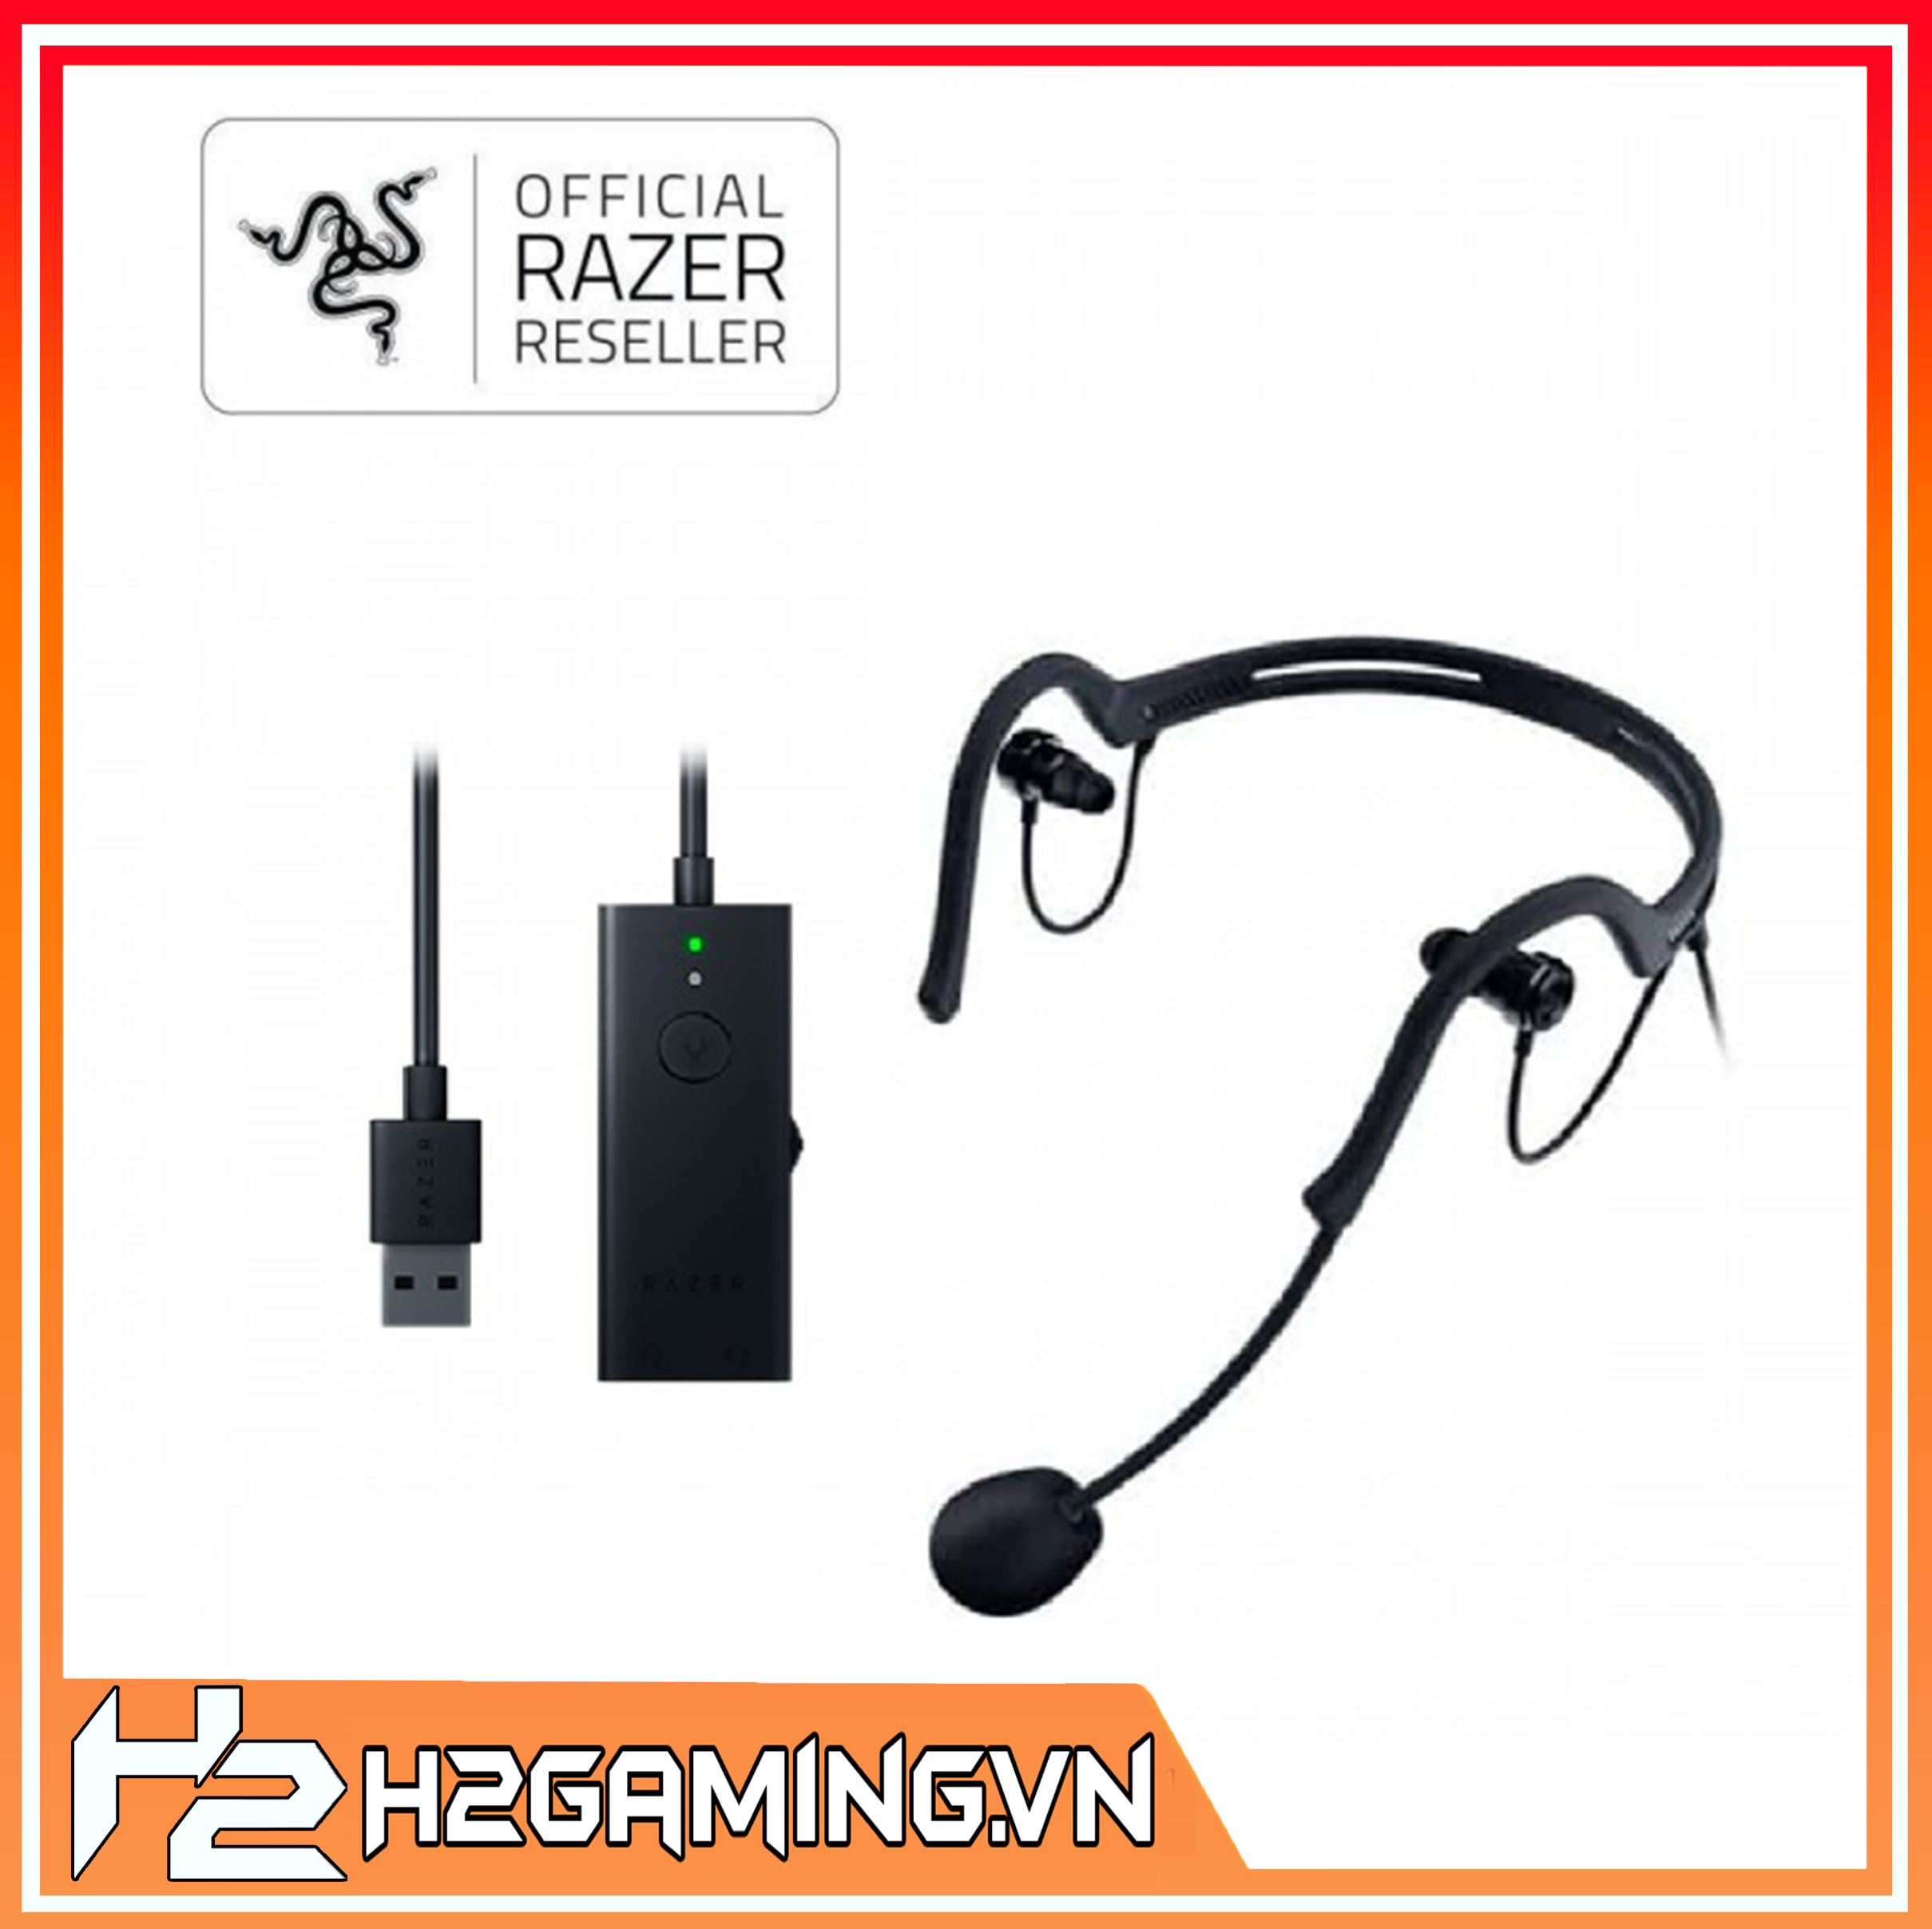 Razer_lfrit_Bundle_HeadsetMicAudio_2